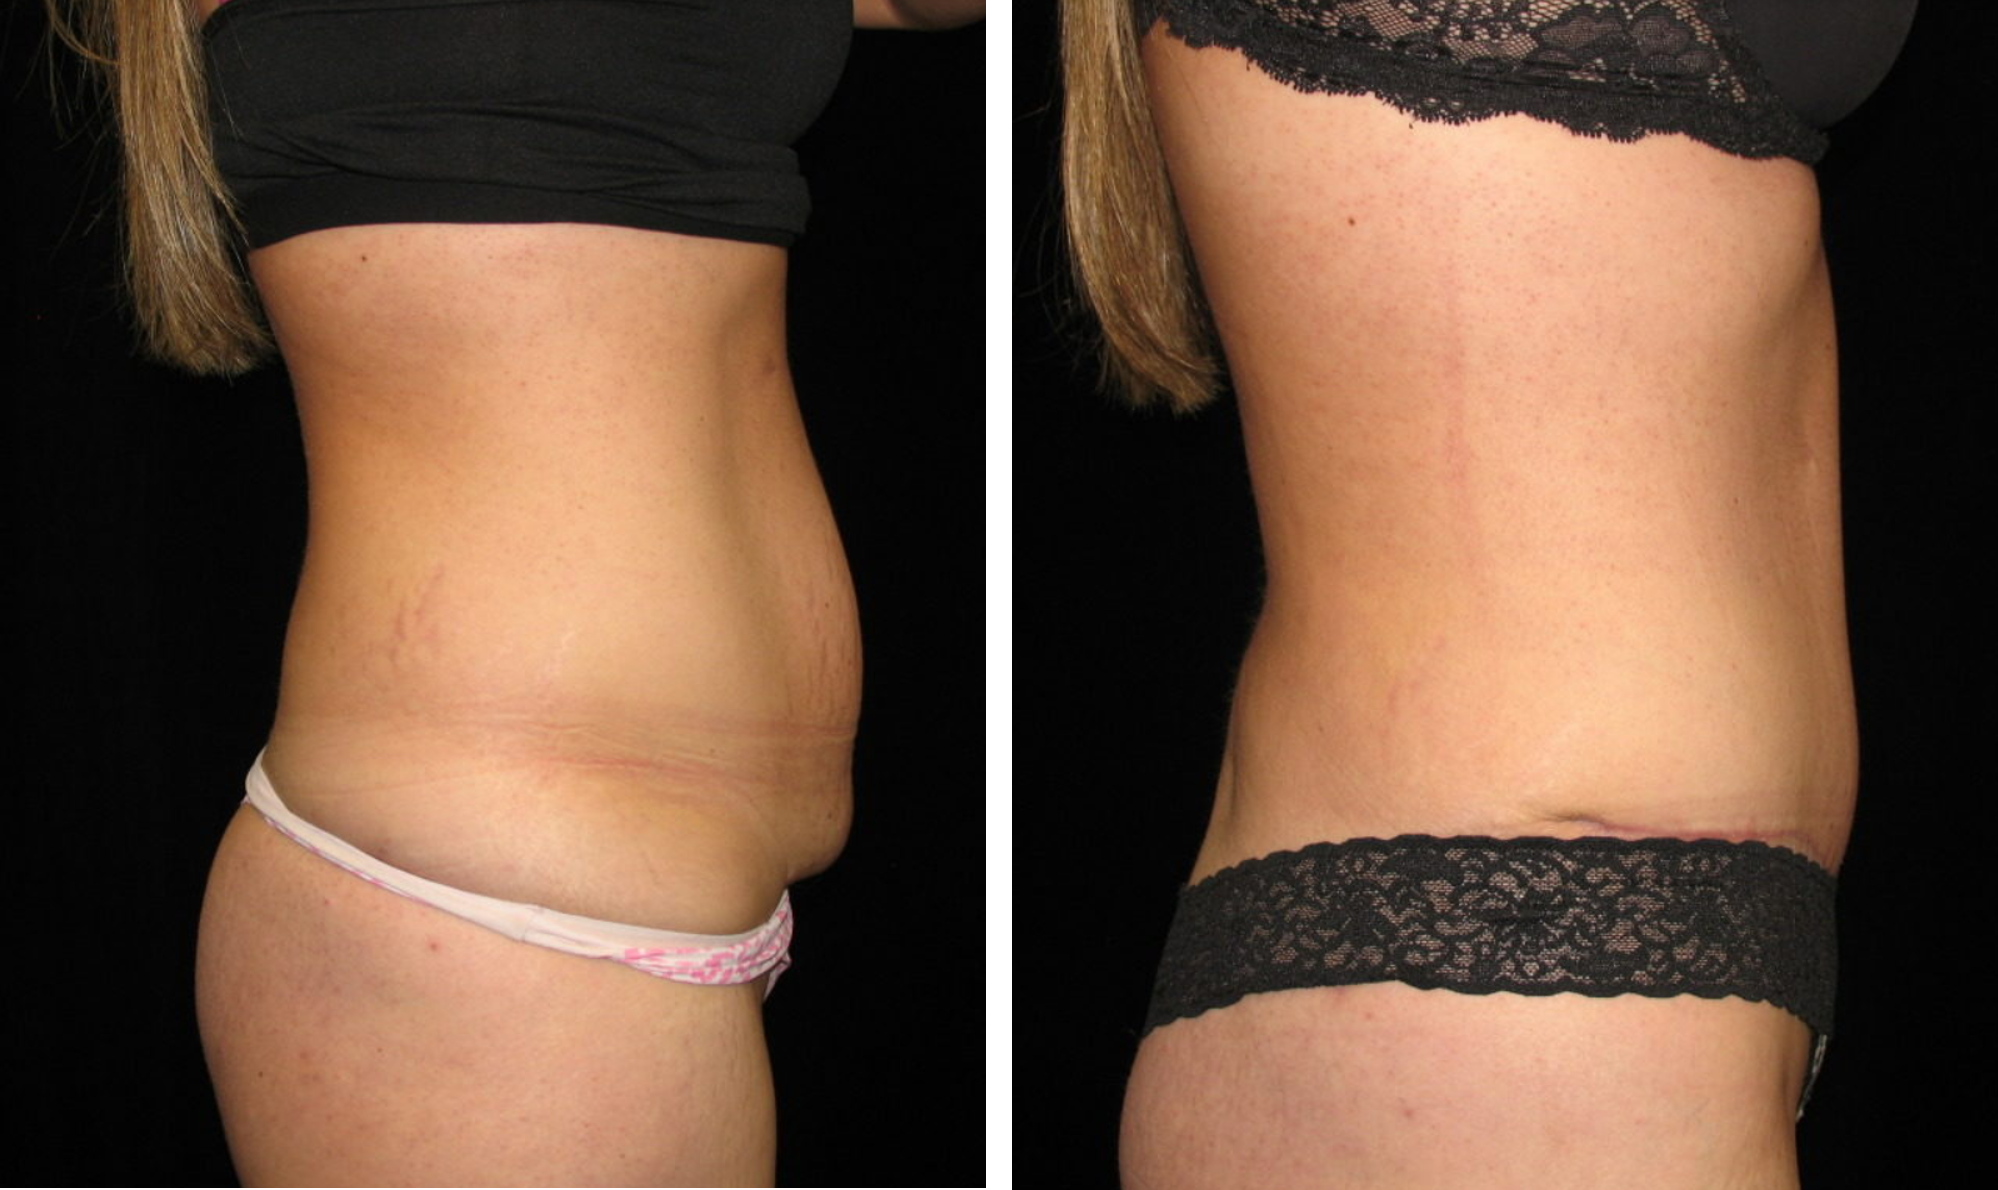 Azani Medical Spa Liposuction Before and After